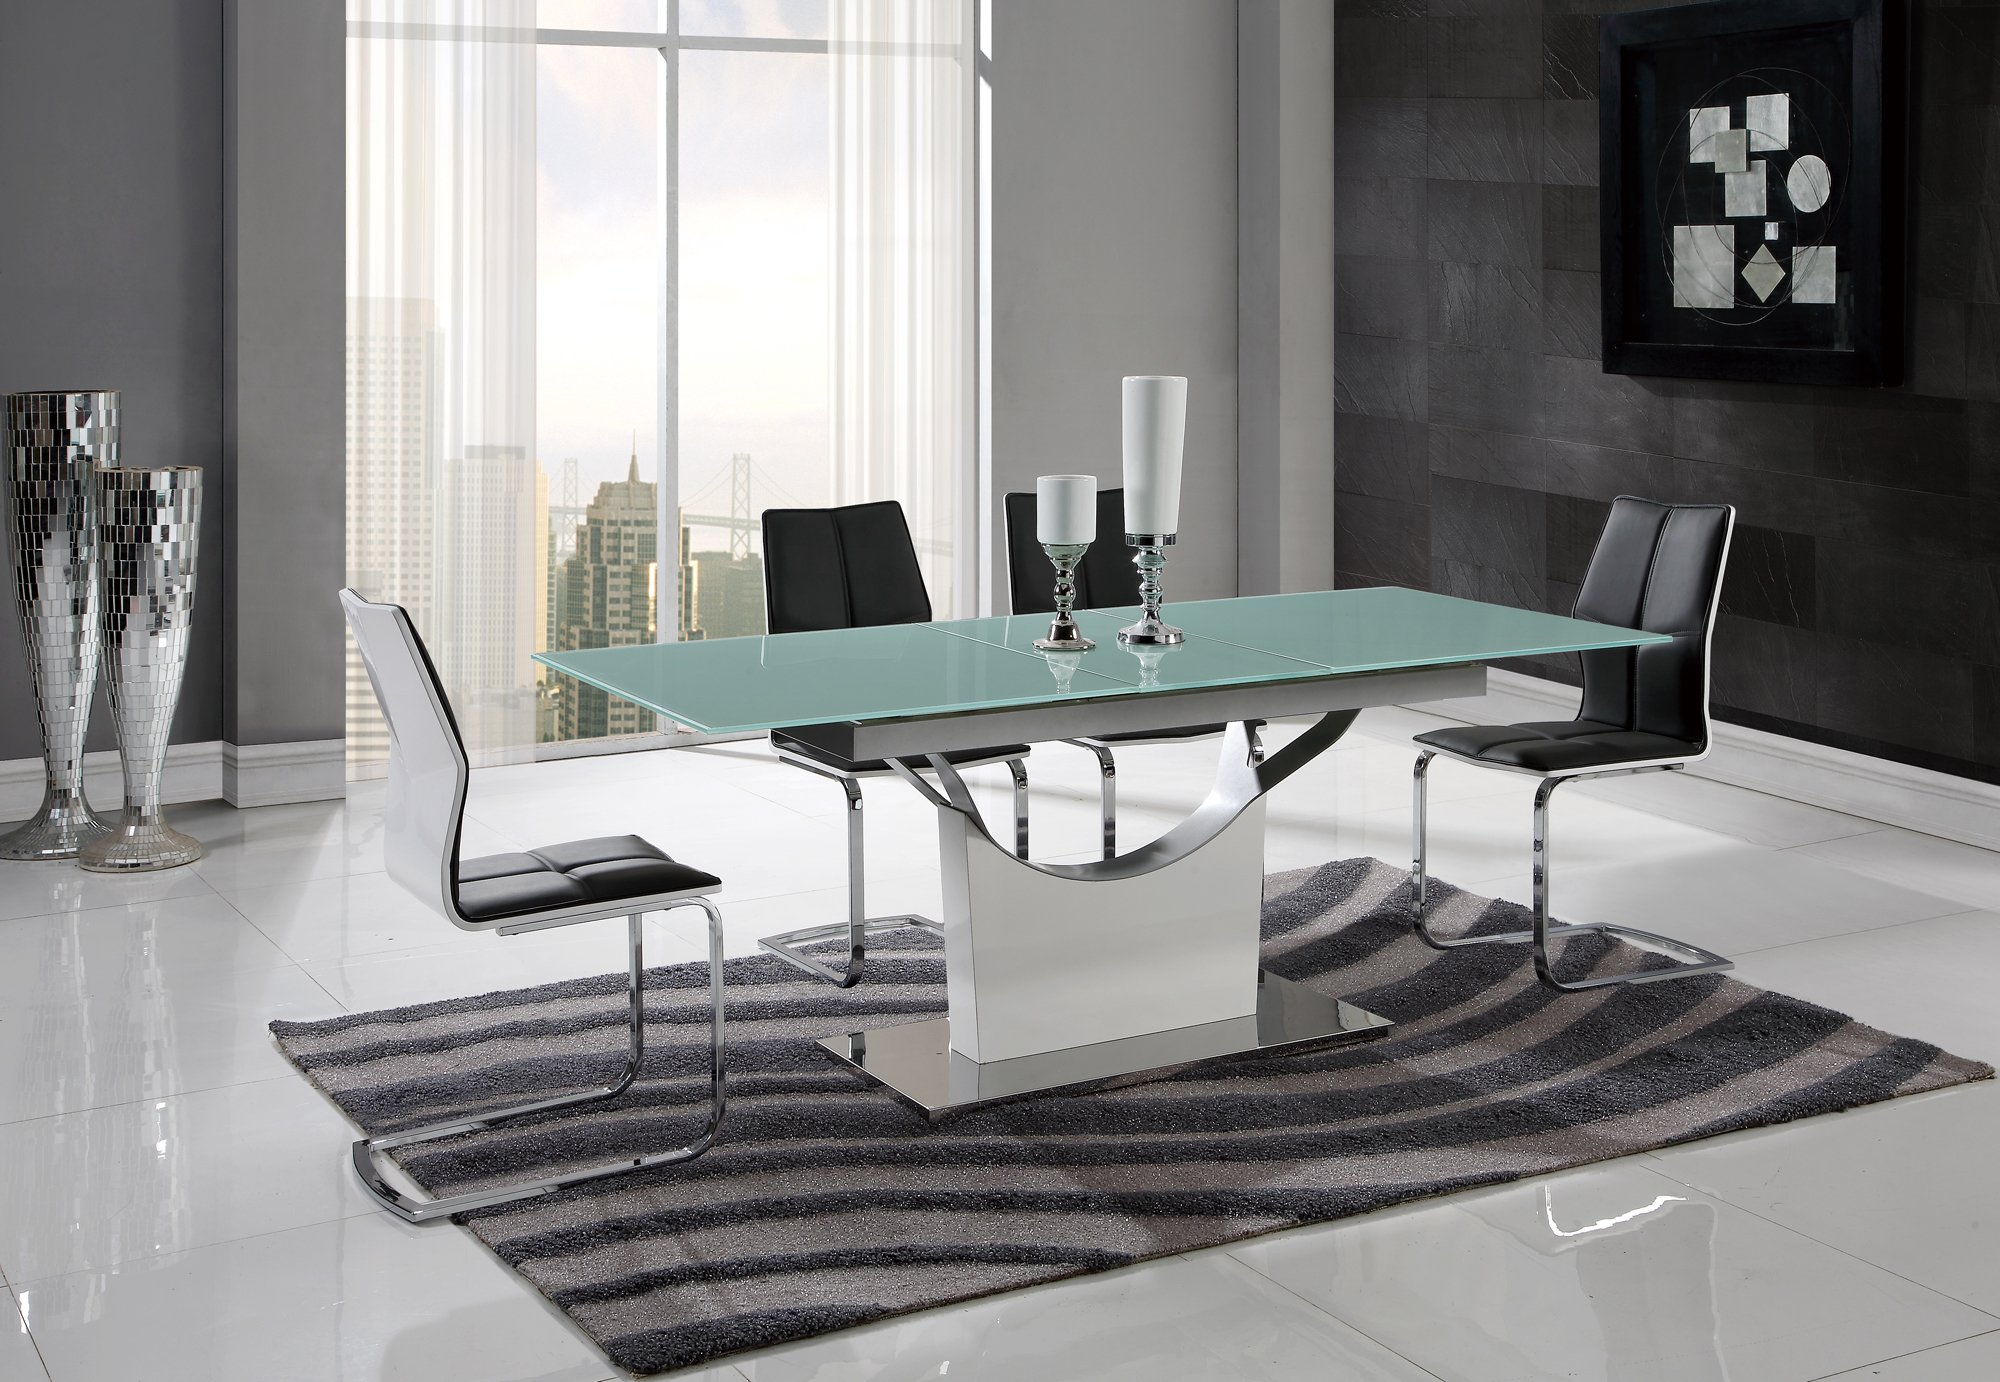 Dining Table D9879DT White HGWhite Glass Top by Global  : D9879DT D8879DT from futonland.com size 2000 x 1382 jpeg 1580kB